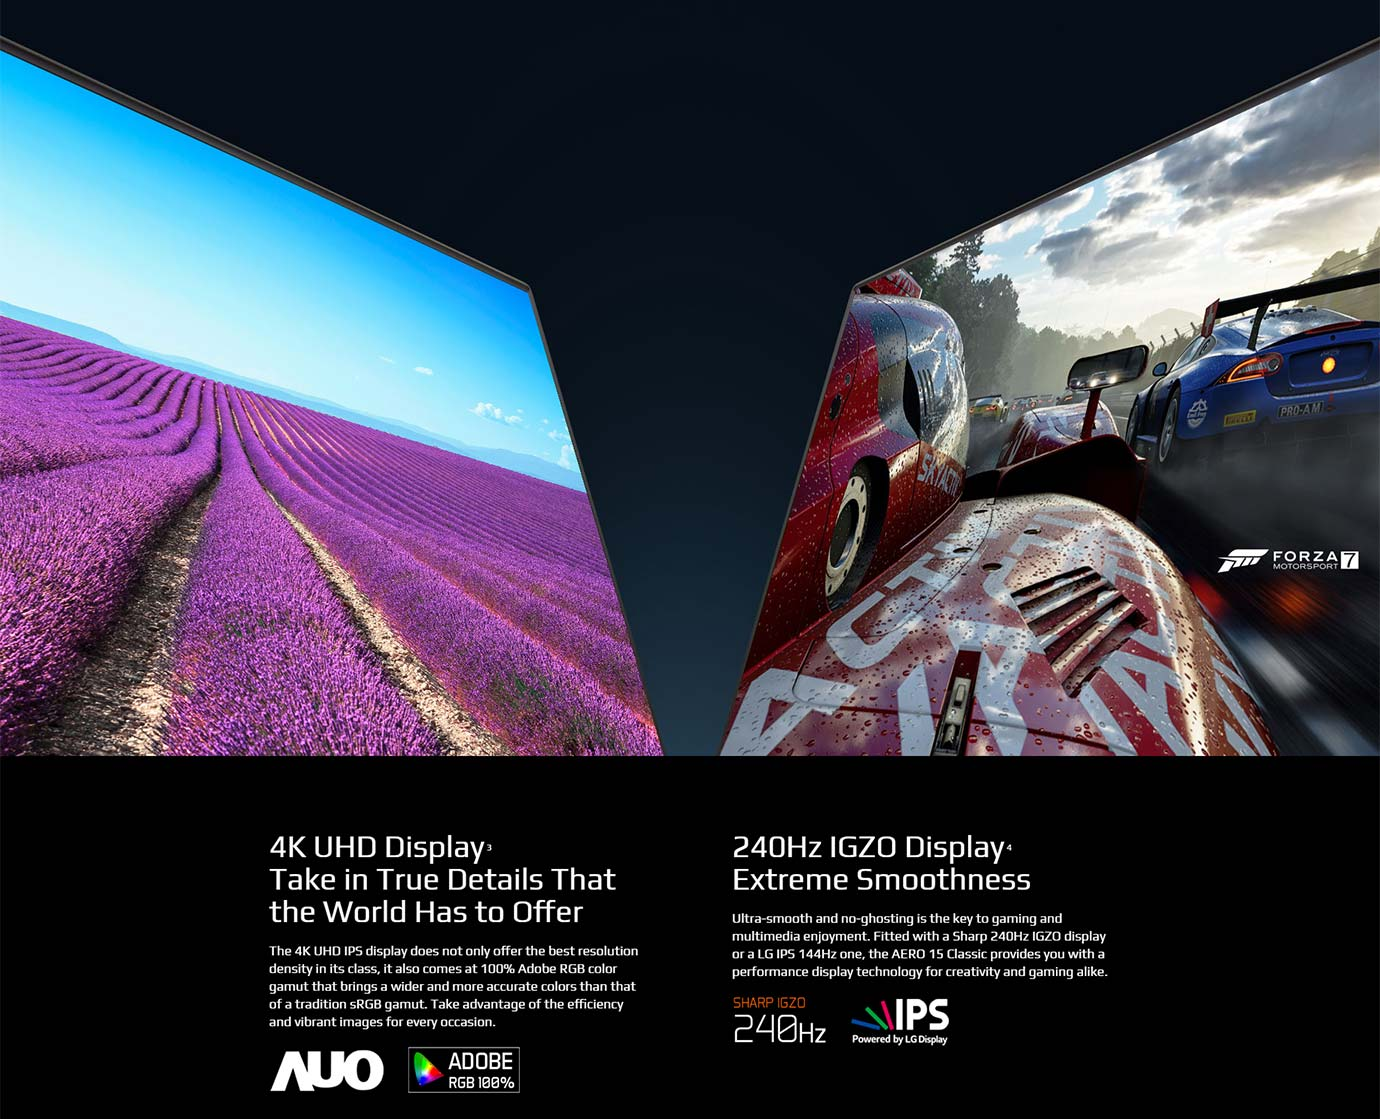 4K UHD Display